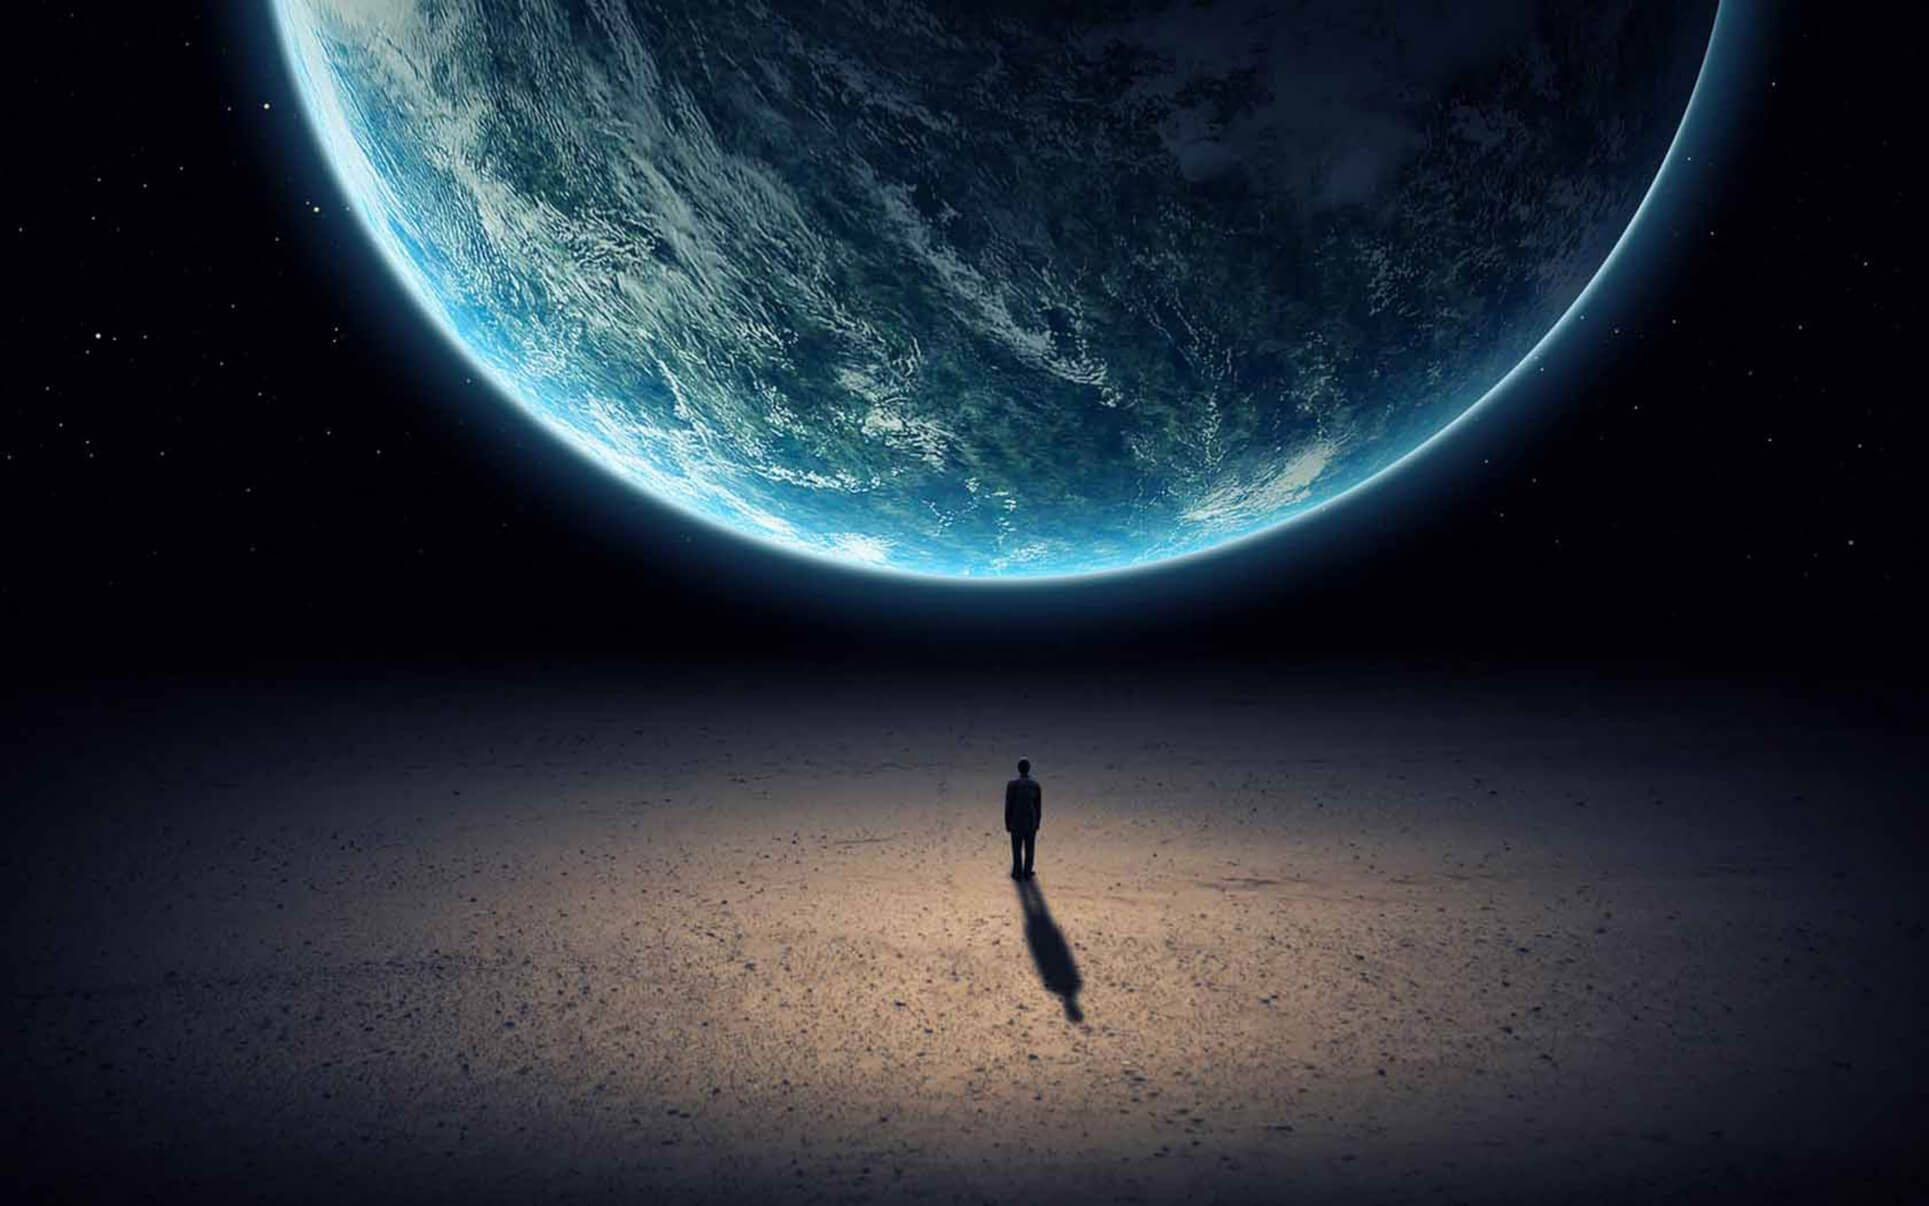 Me Against The World Wallpaper Hd World Wallpaper Planet Pictures Me Against The World